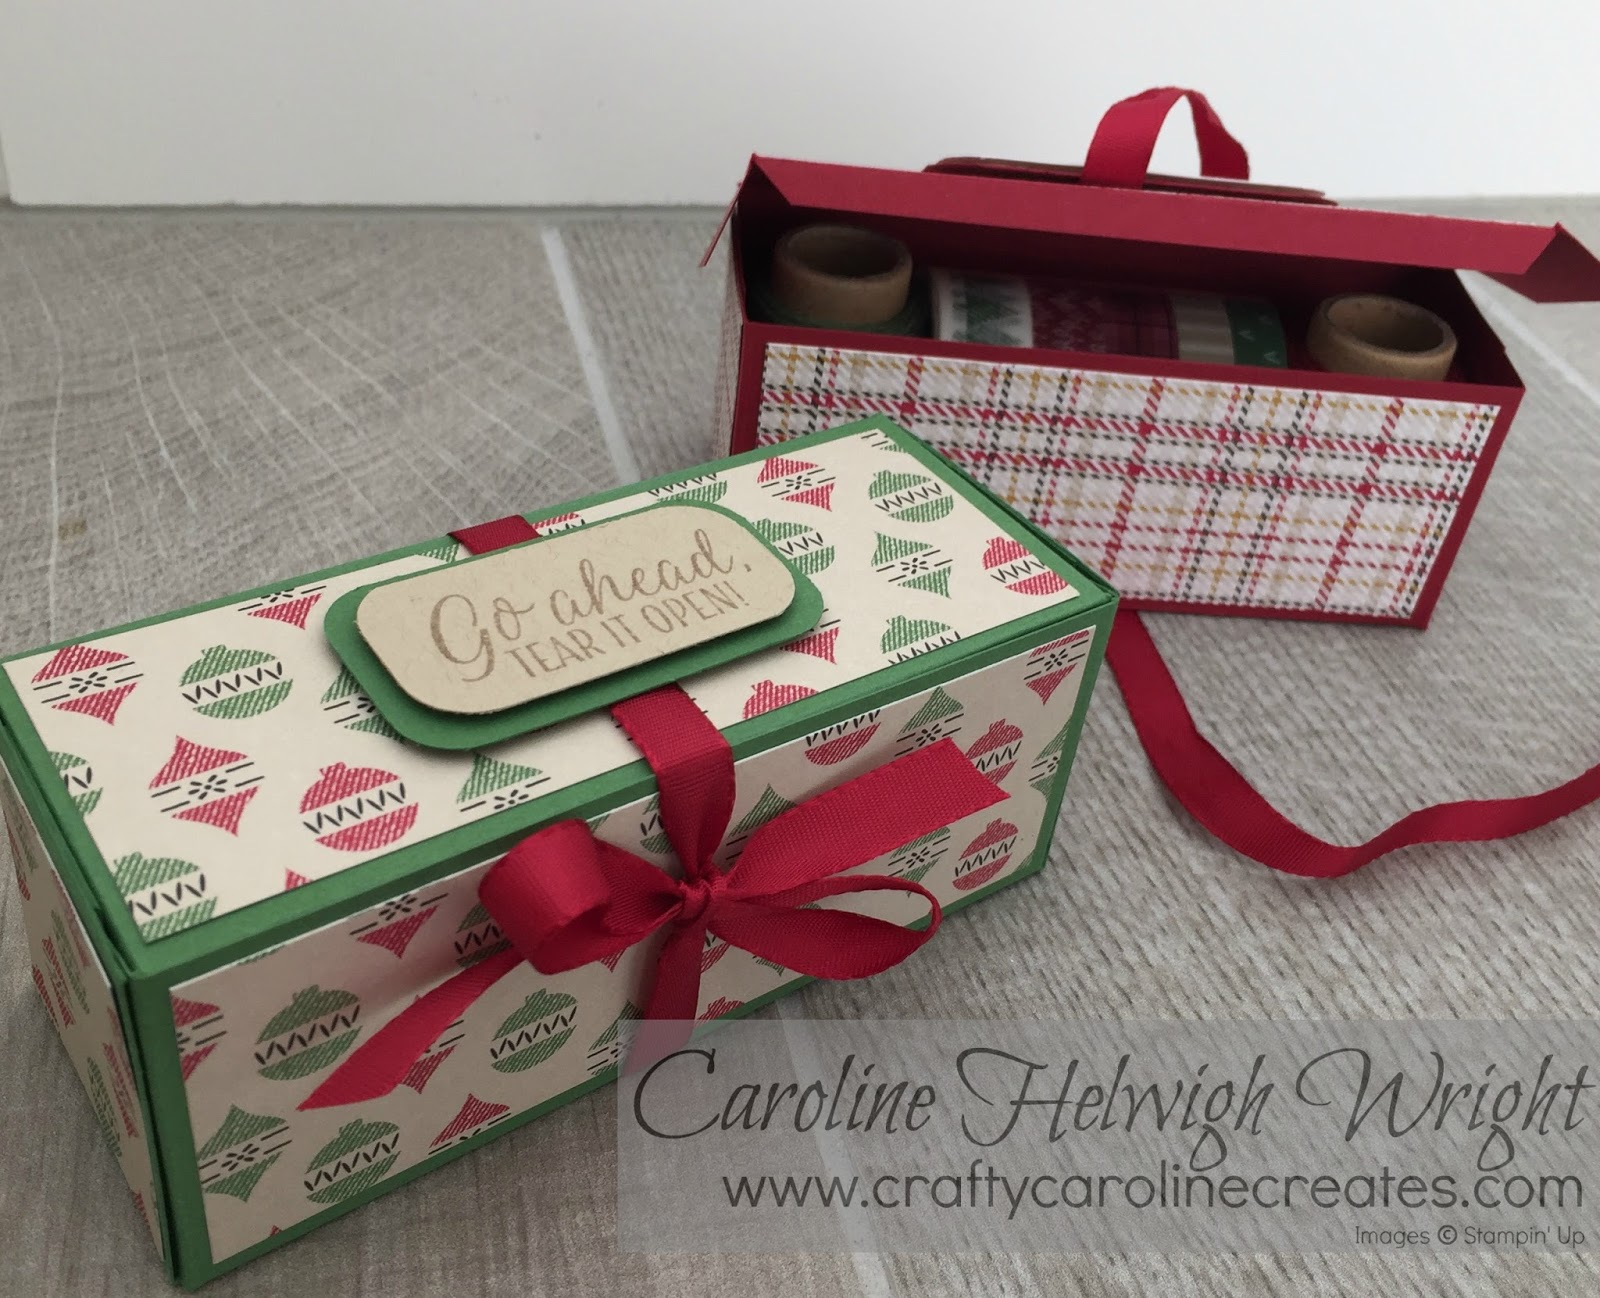 CraftyCarolineCreates: Large Useful Christmas Gift Box ...